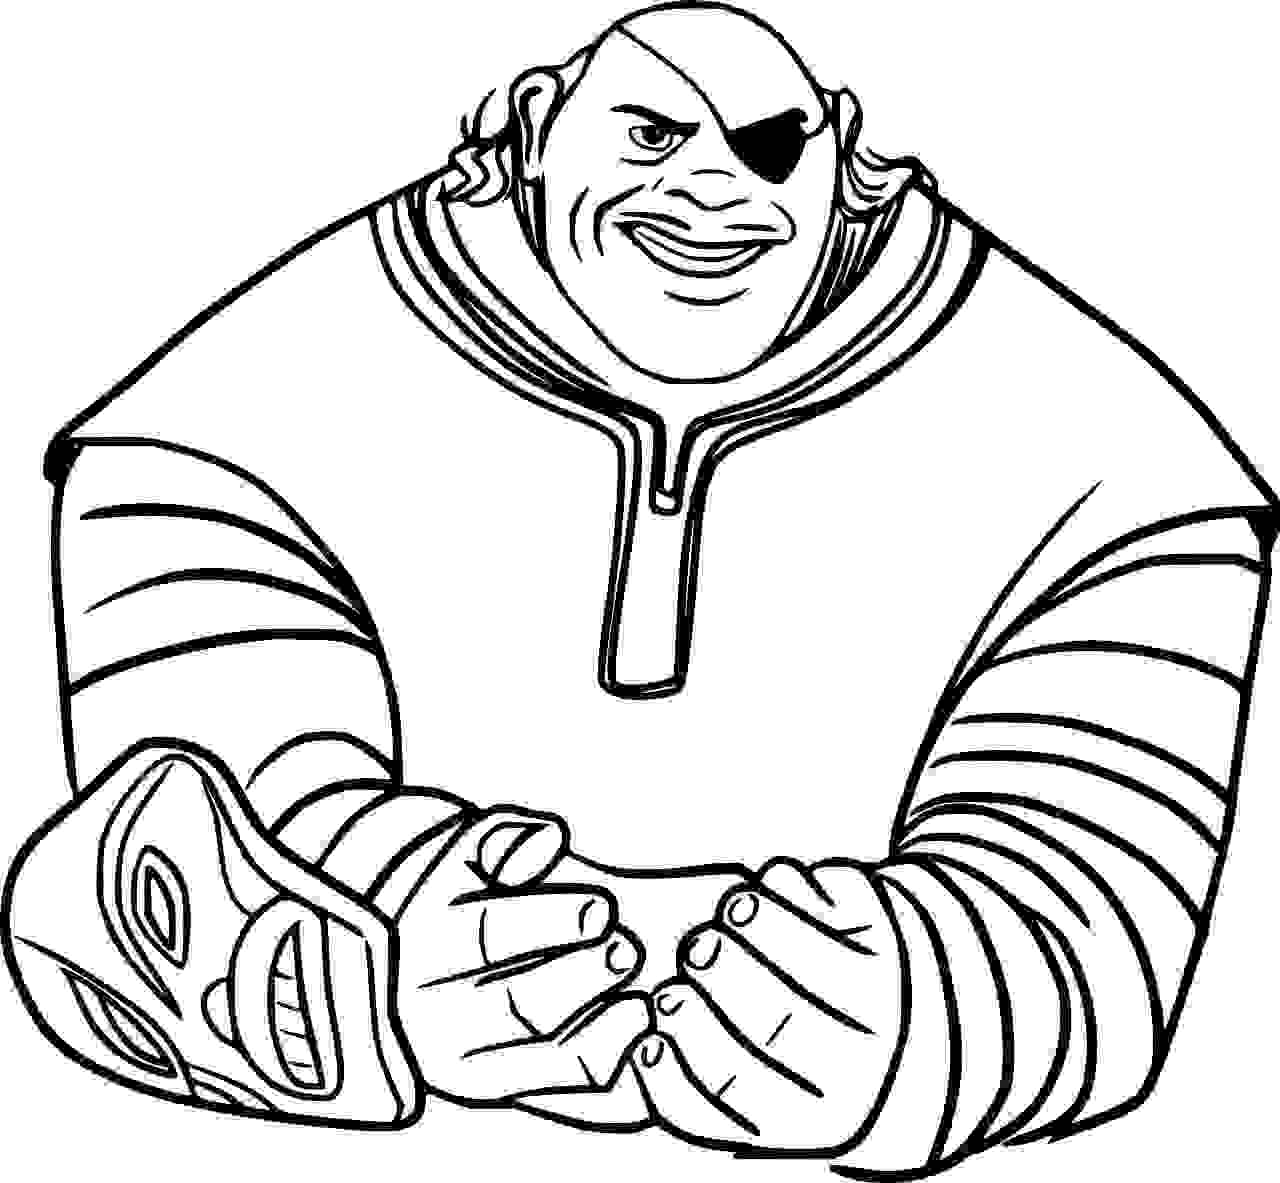 Tong from Spine Land Coloring Page